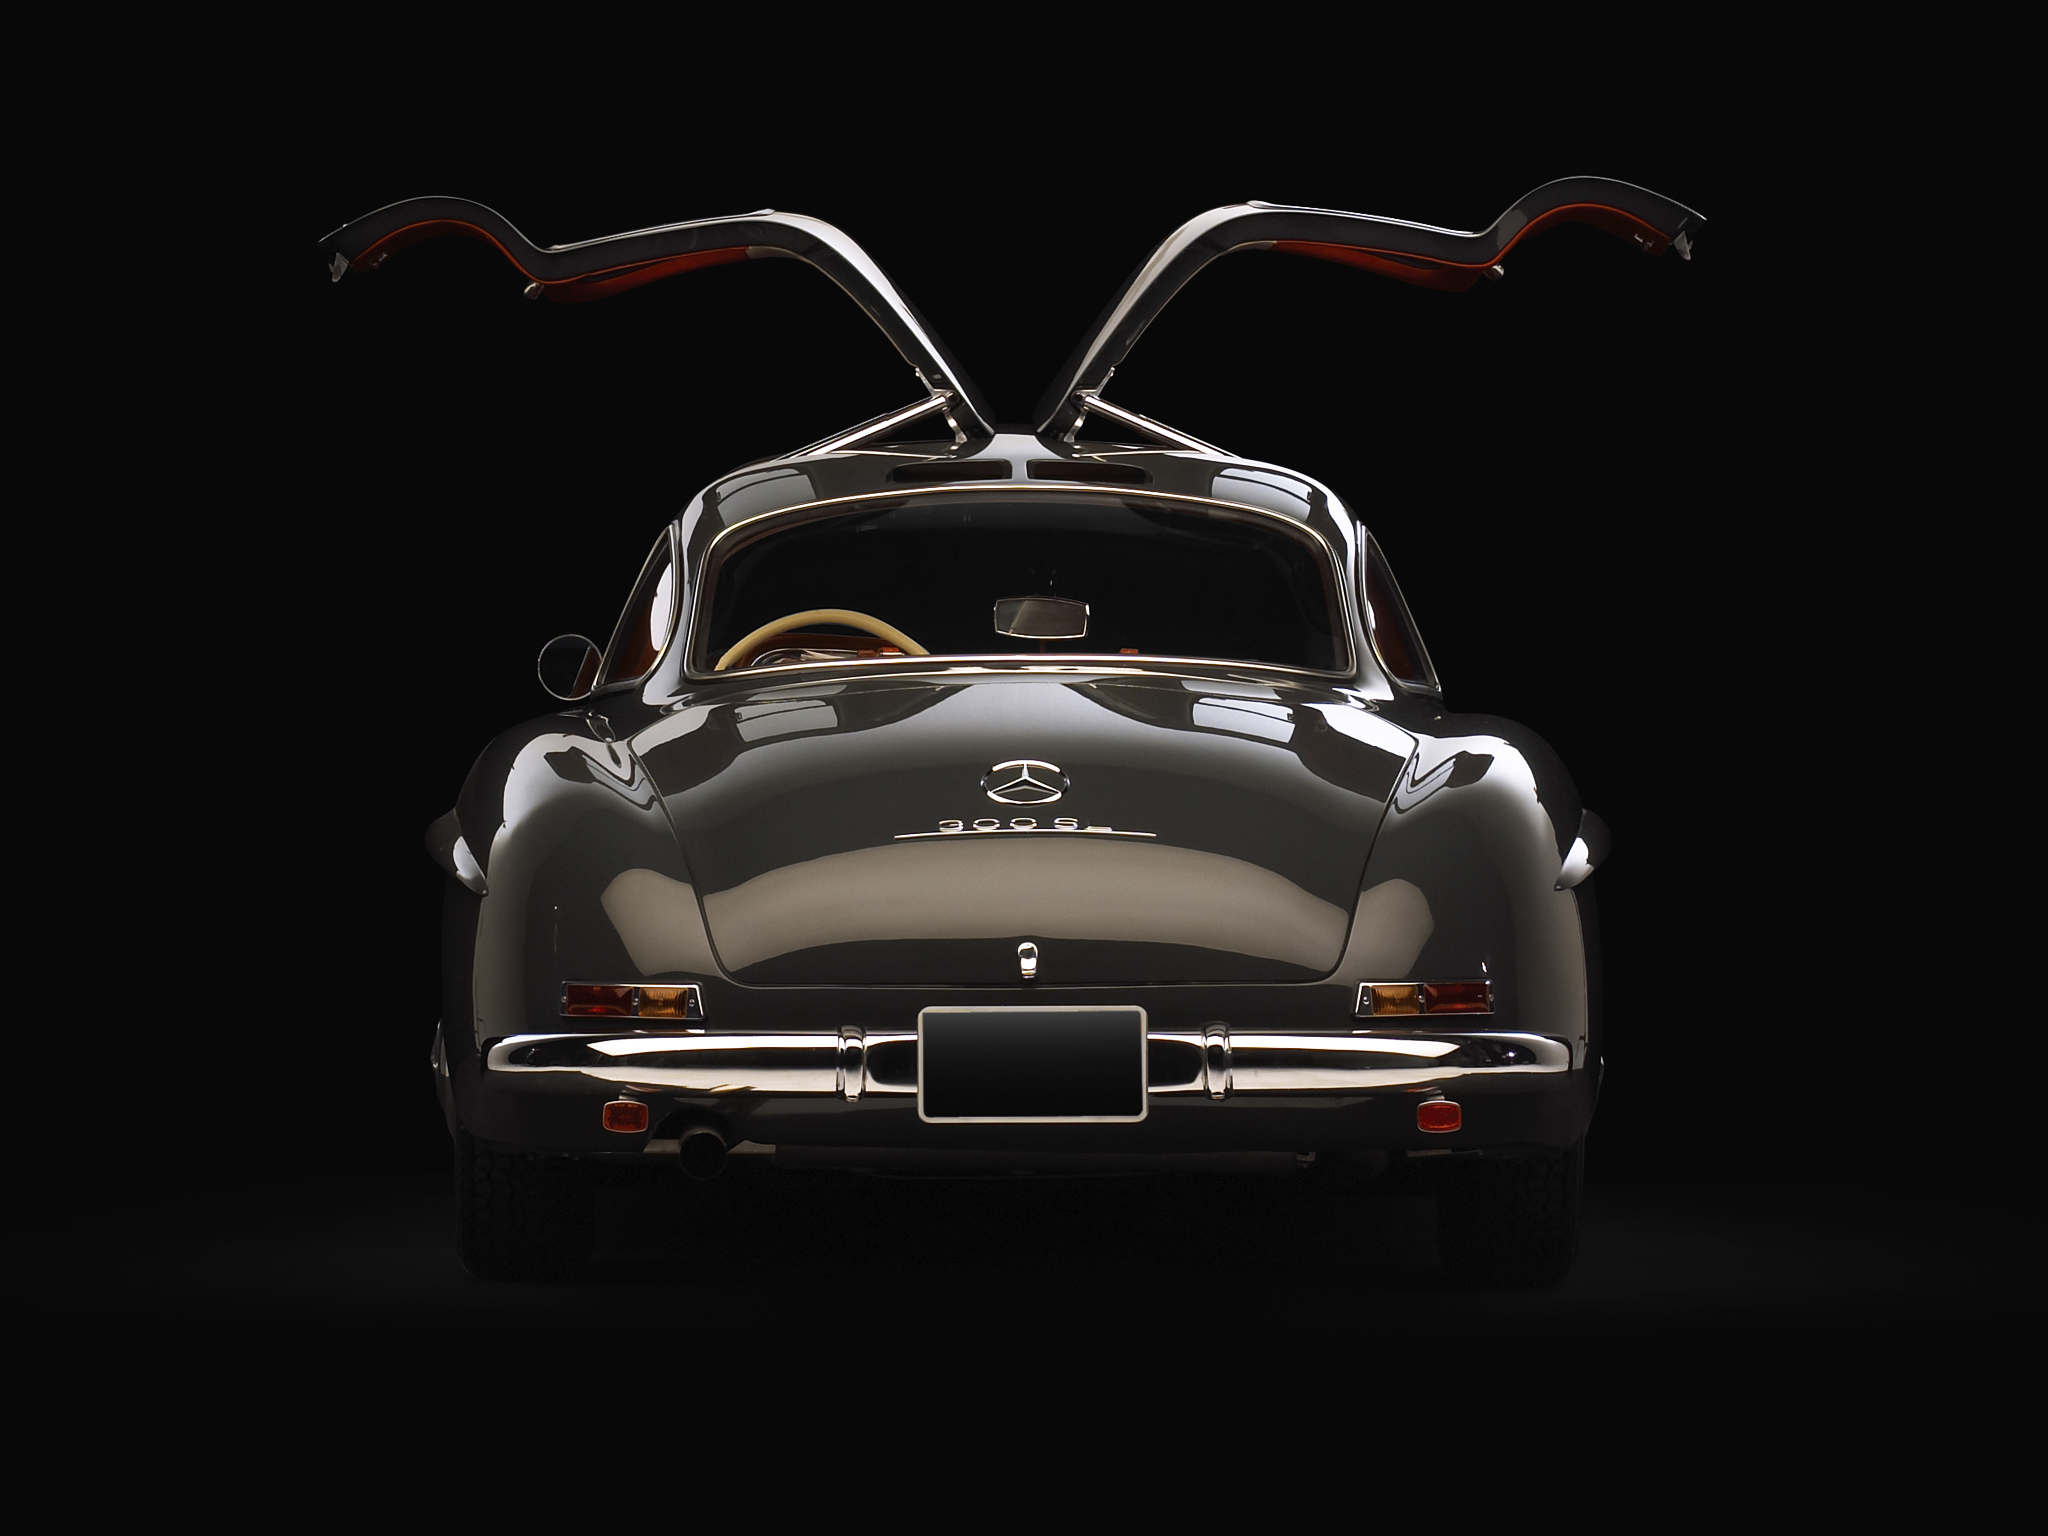 300sl 254 wallpaper - photo #35